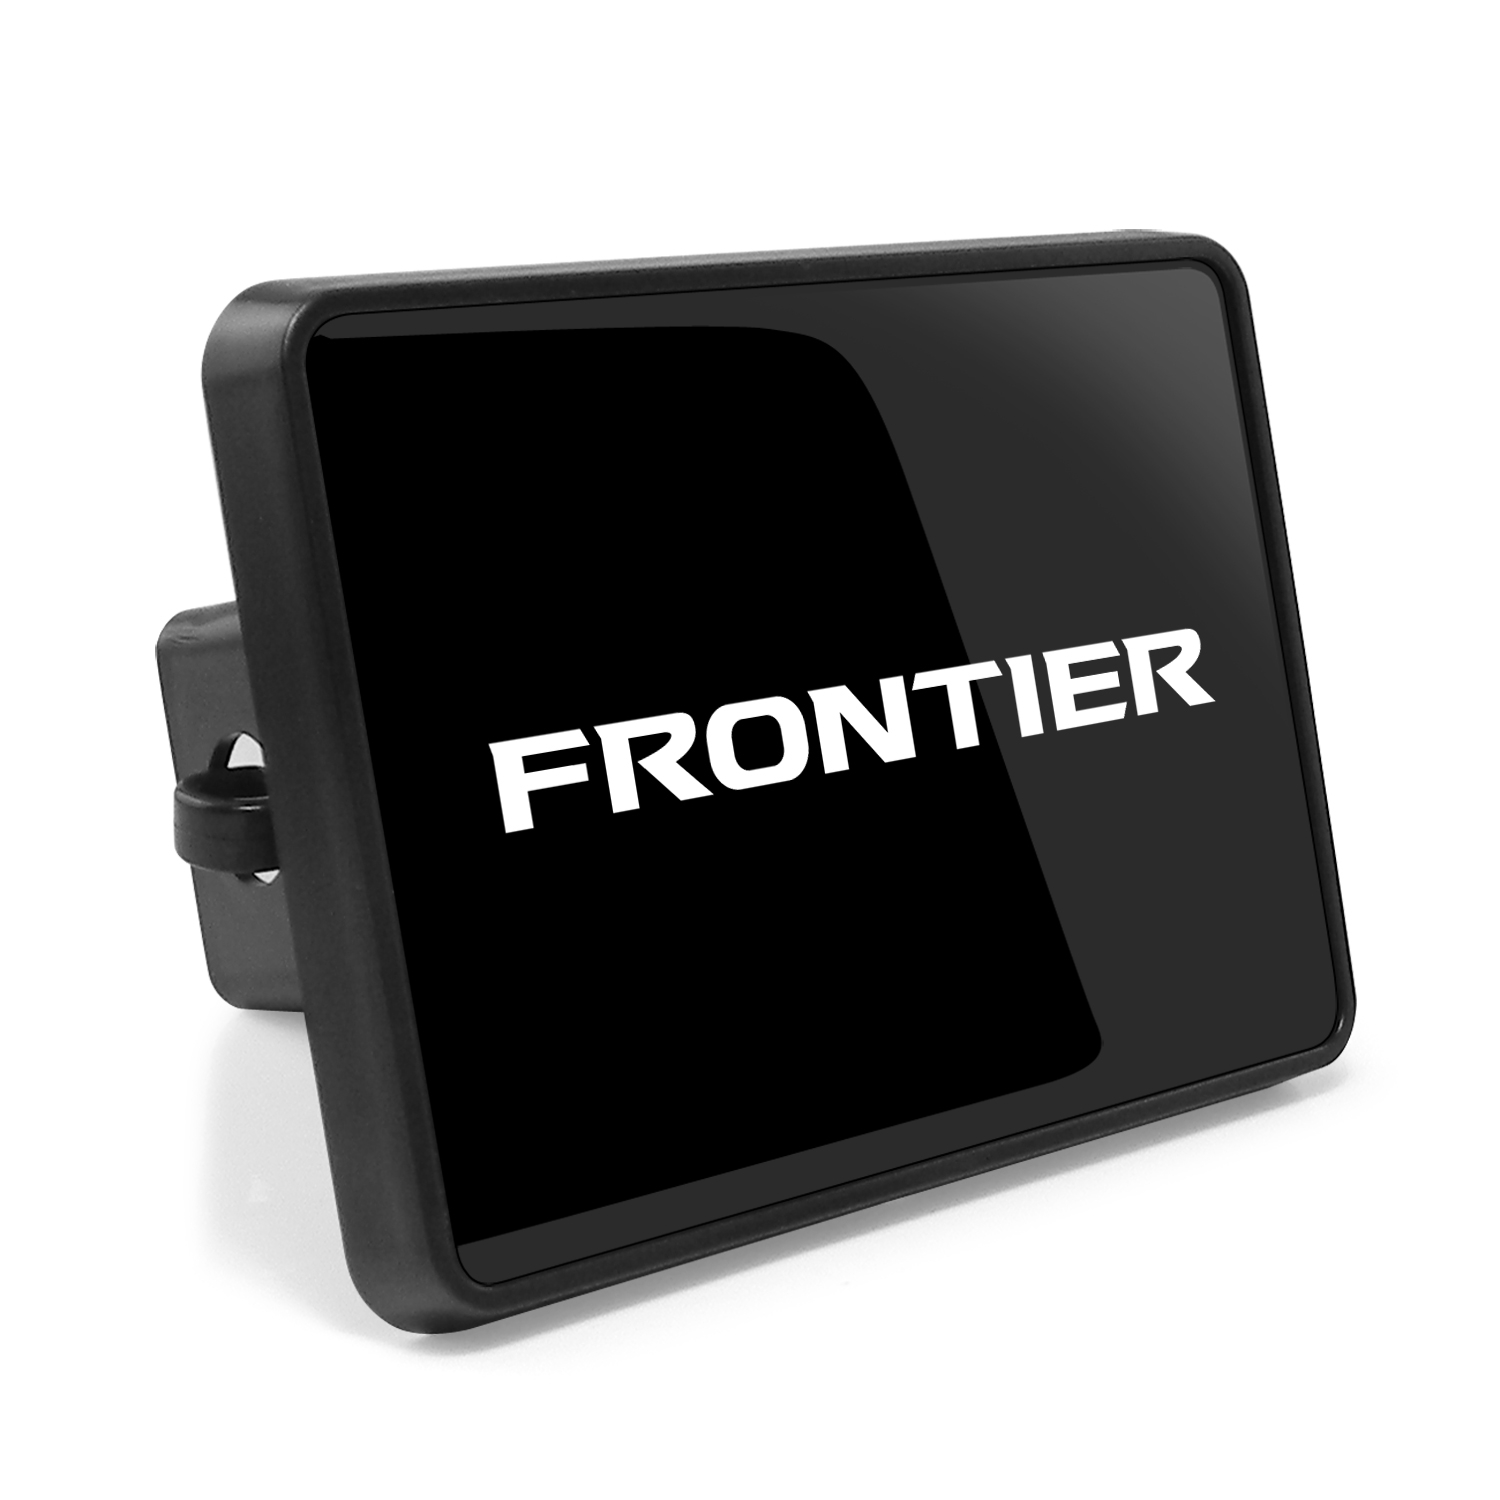 Nissan Frontier UV Graphic Black ABS Plastic 2 inch Trailer Hitch Cover